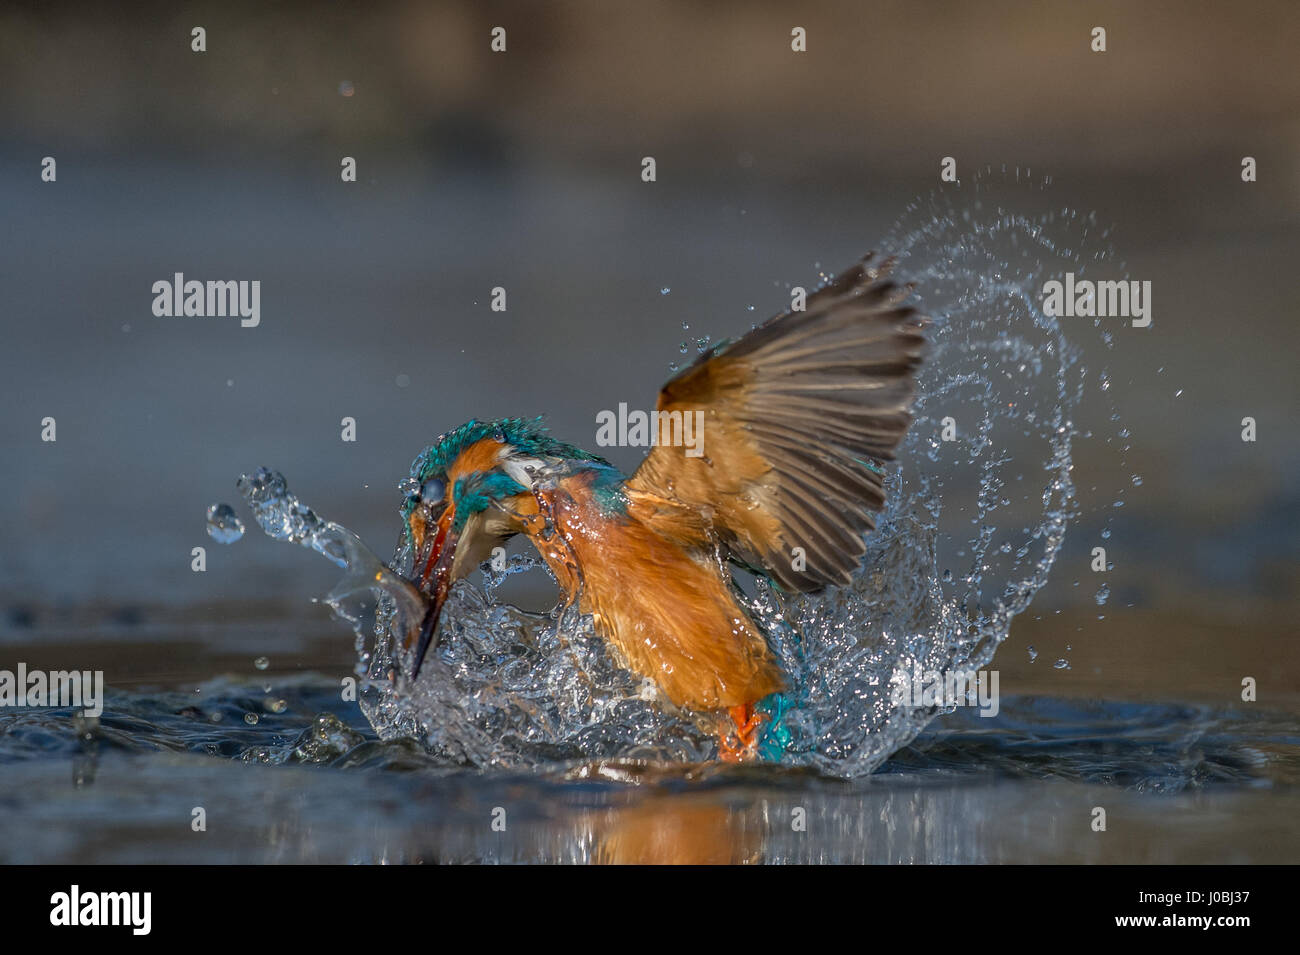 TORREVECCHIA PIA, ITALY: A SPRITELY kingfisher has been snapped having the time of its life frolicking in cool water. - Stock Image